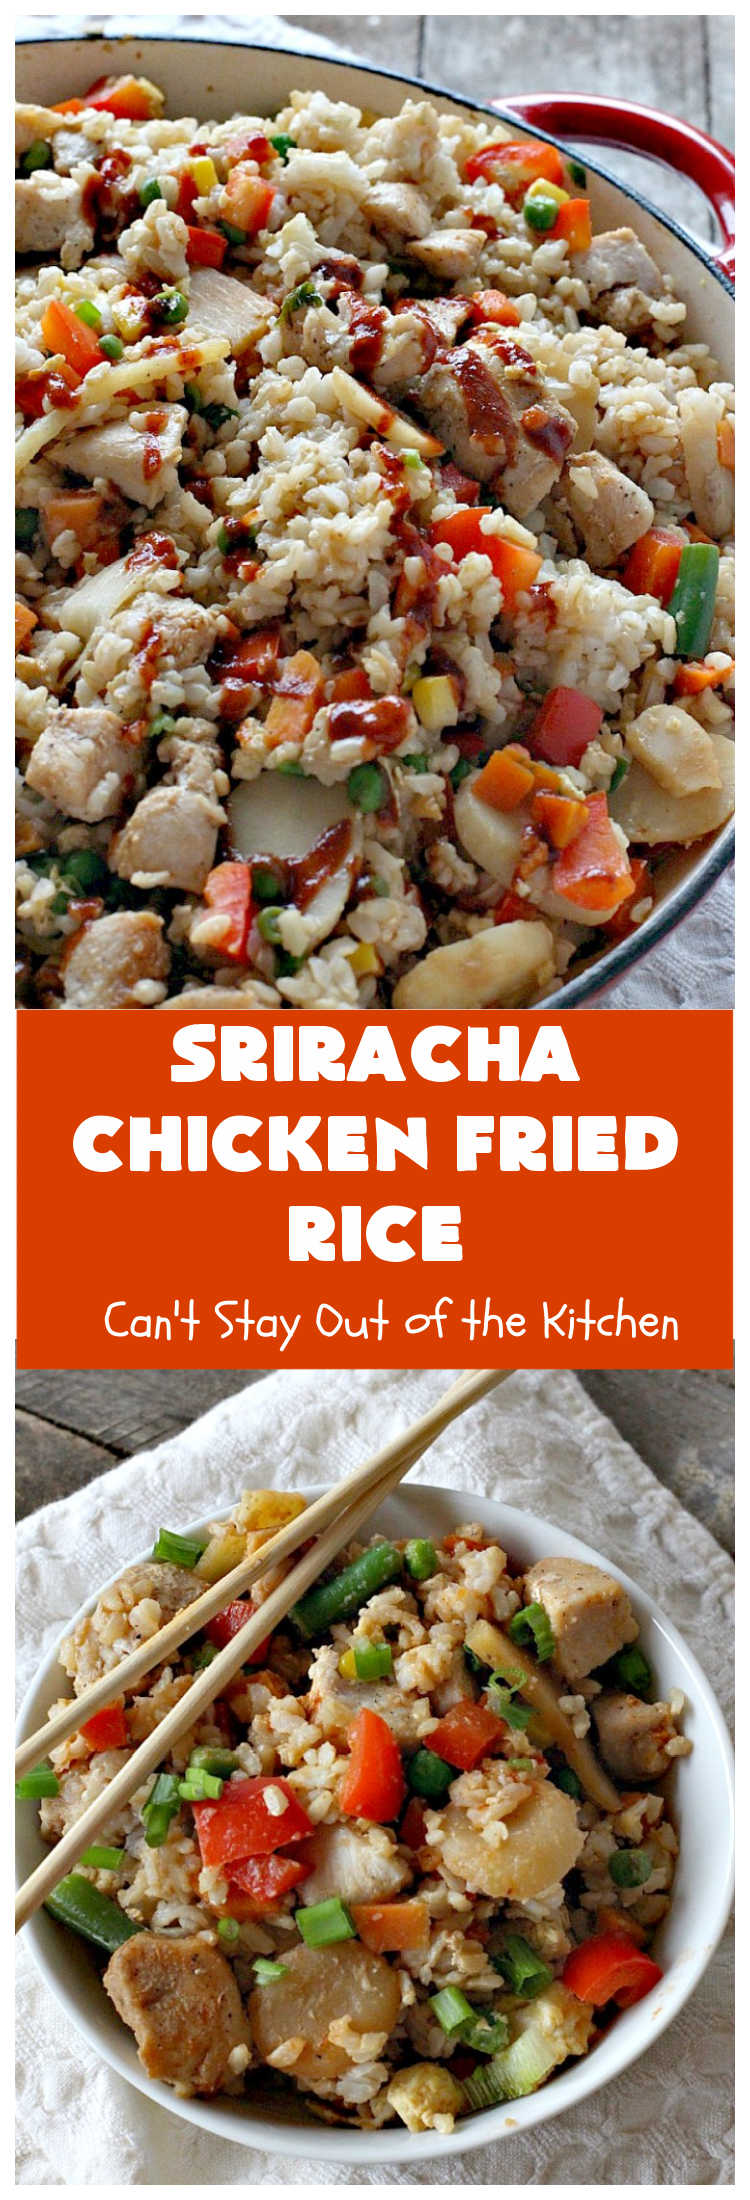 Sriracha Chicken Fried Rice | Can't Stay Out of the Kitchen | fantastic #chicken #FriedRice entree. It's spiced up with #Sriracha sauce! This 30-minute meal is a winner! #GlutenFree #rice #SrirachaChickenFriedRice #ChickenFriedRice